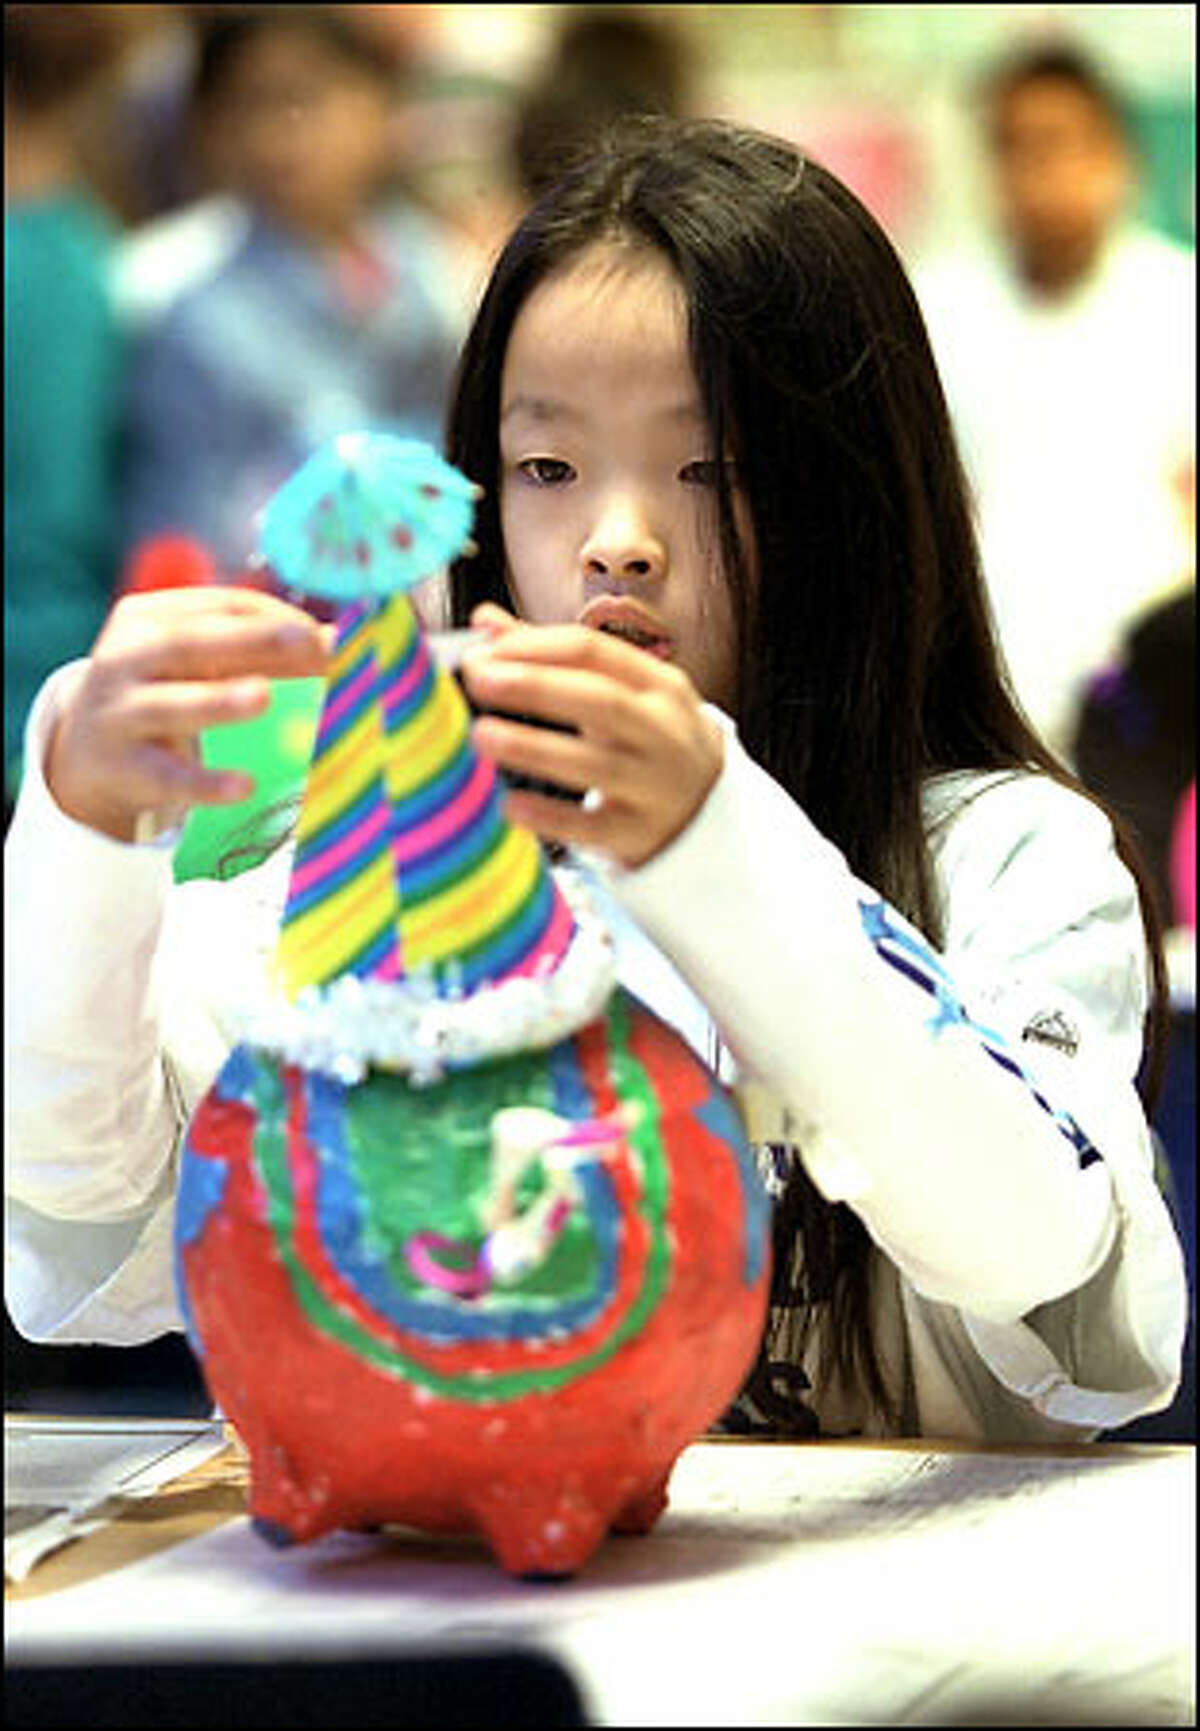 Third-grader Chunvanny Lim works on her pig, Rainbow Star, as part of Sanislo Elementary's Pigs on parade project.